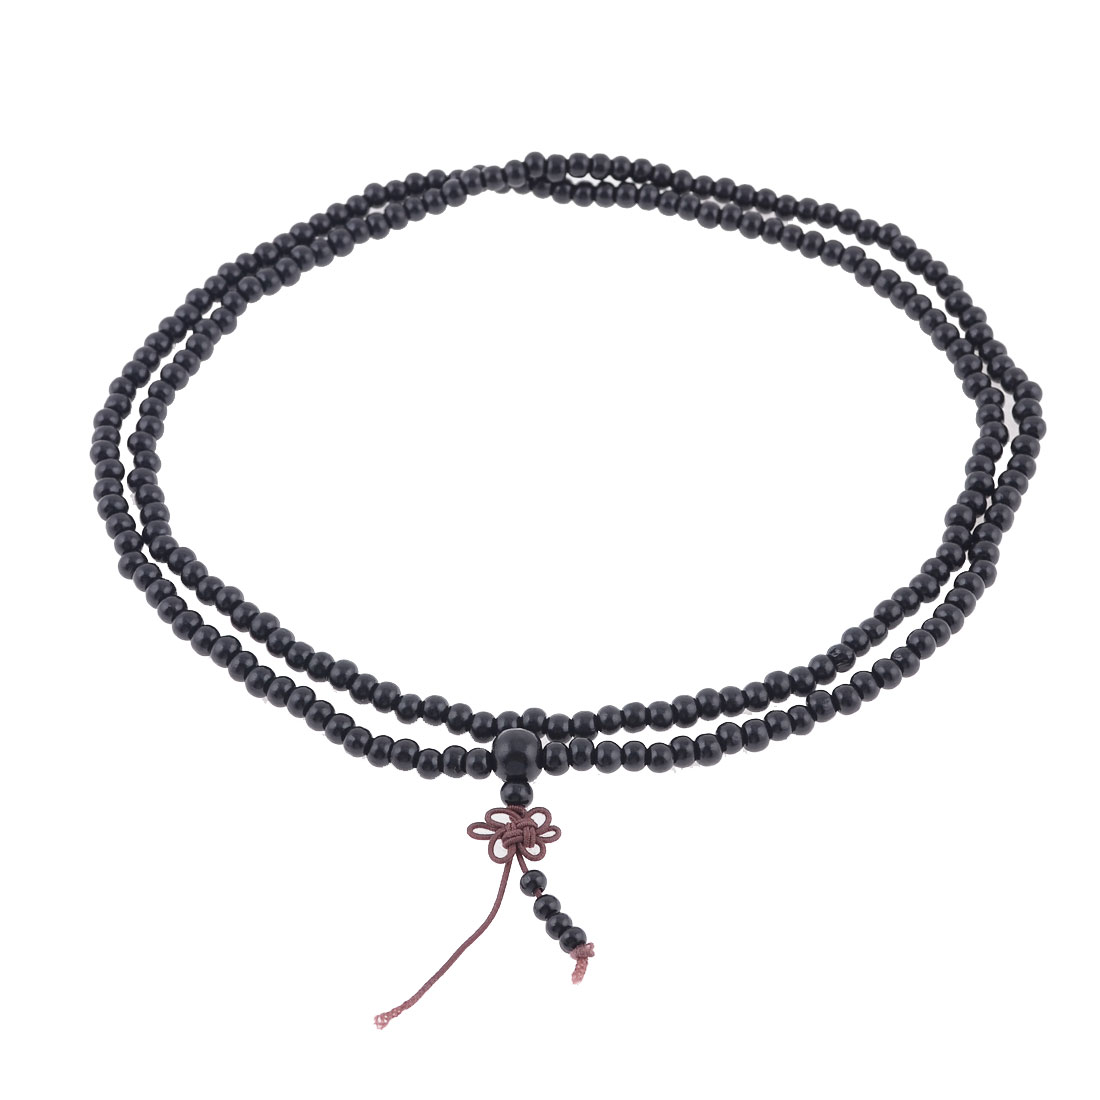 Stretch Strap 6mm Dia Beads Sandalwood Buddhist Prayer Necklace Black